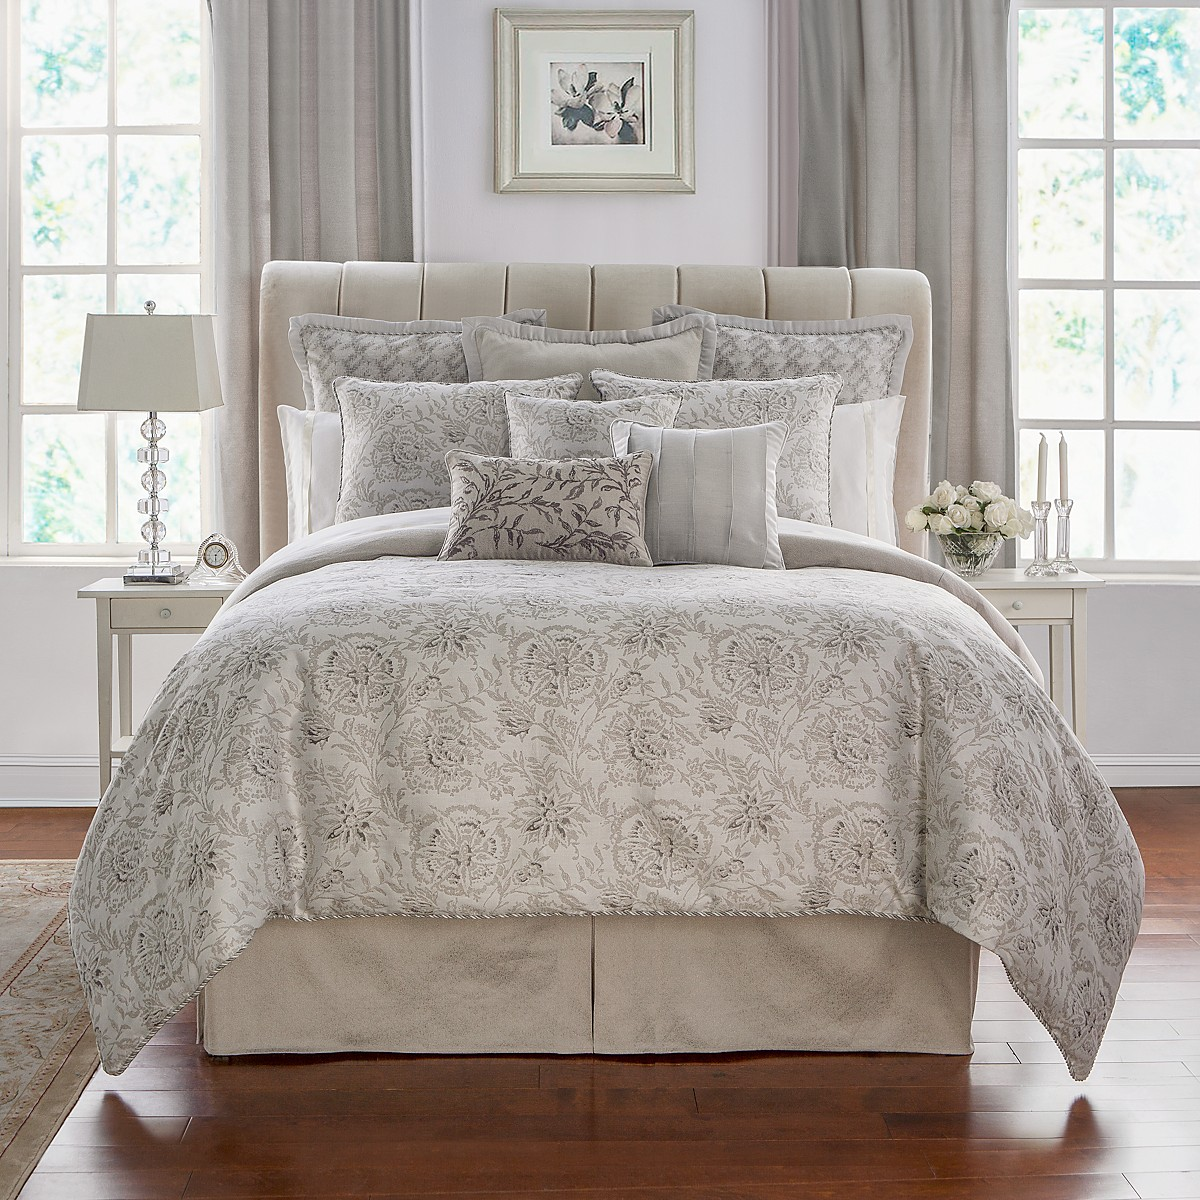 trends dillards lauren decor comforter hollywood zi ralph macys on sets discount topic com comforters collec old past bloomingdales collections bedding sale clearance discontinued uk luxury related to